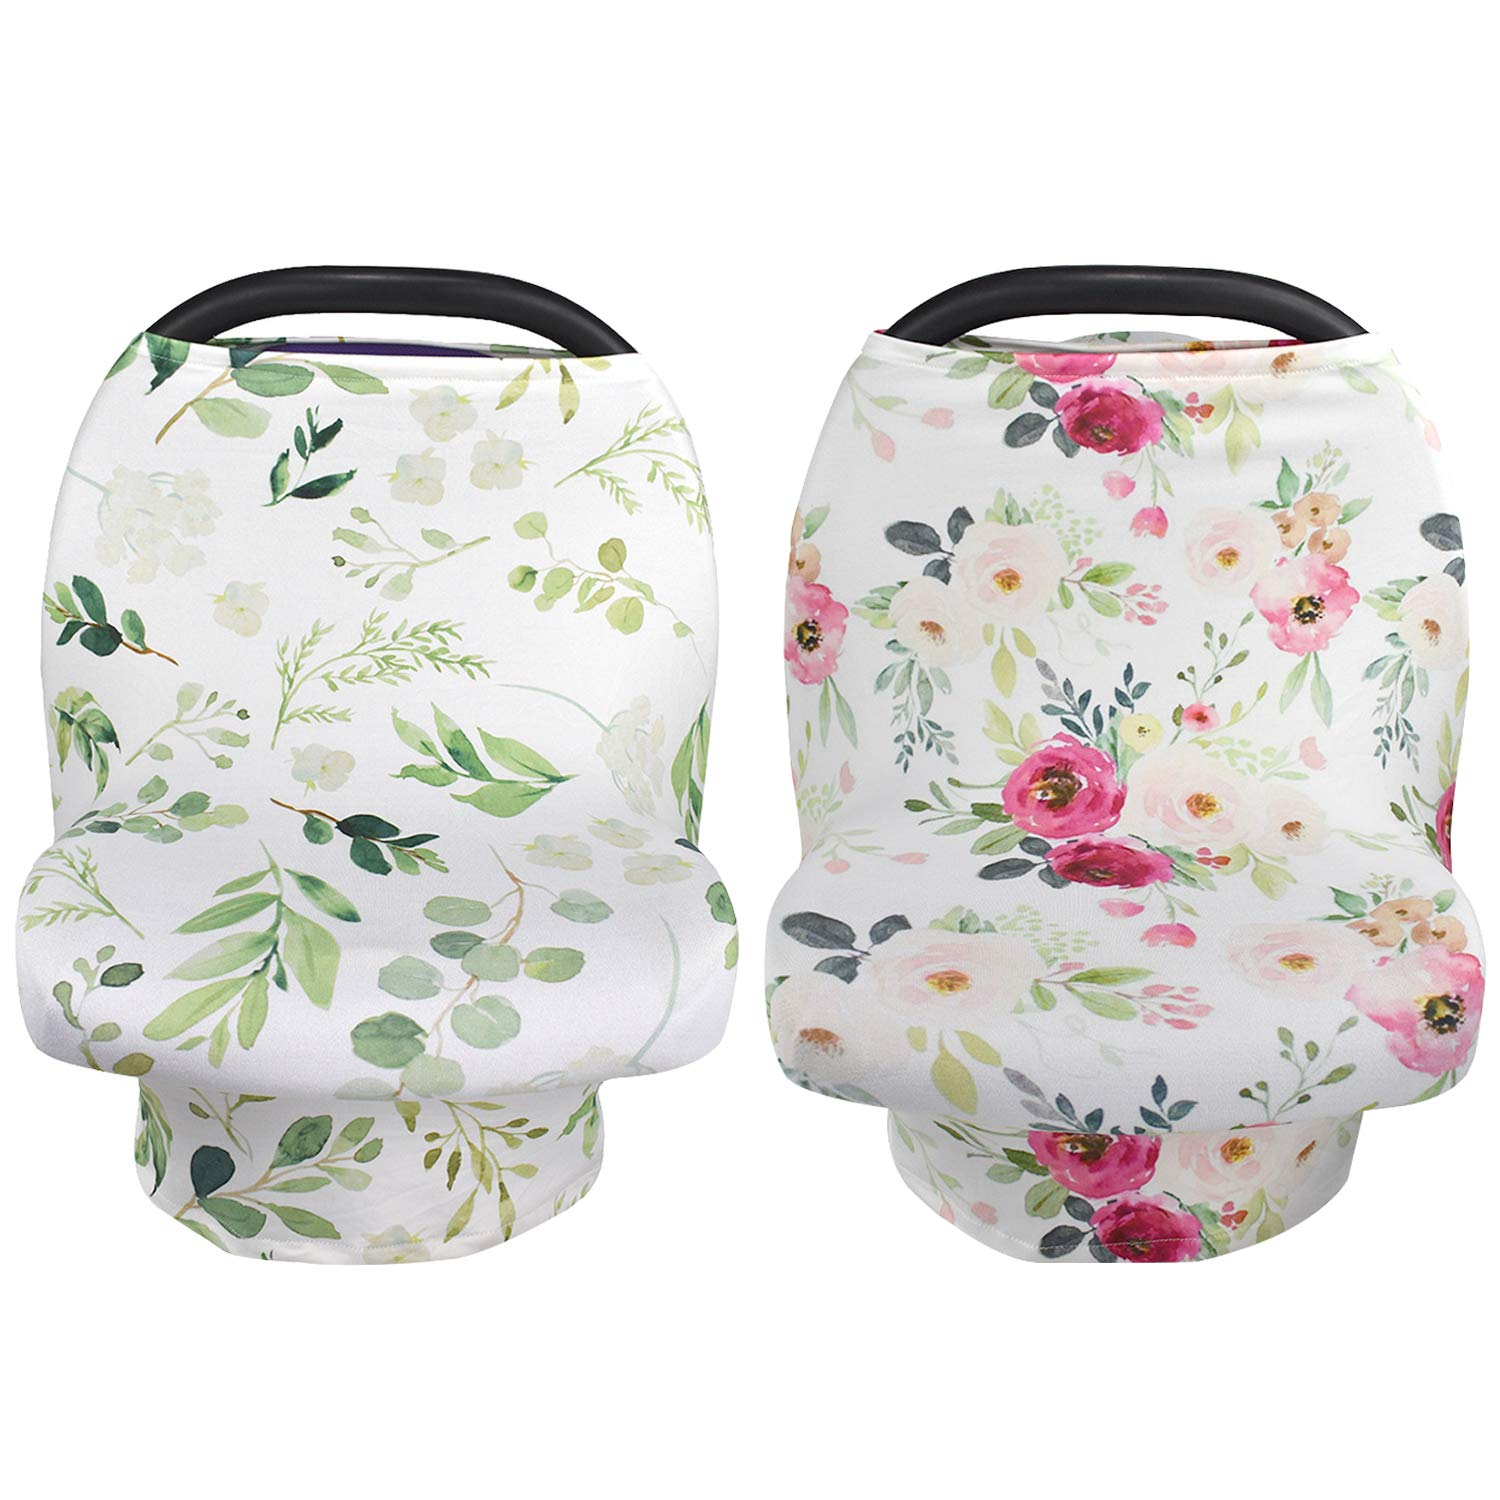 Car seat Canopy for Girls and Boys NEWITIN 2 Pieces Nursing Cover Breastfeeding Scarf Baby Car Seat Covers Infant Stroller Cover